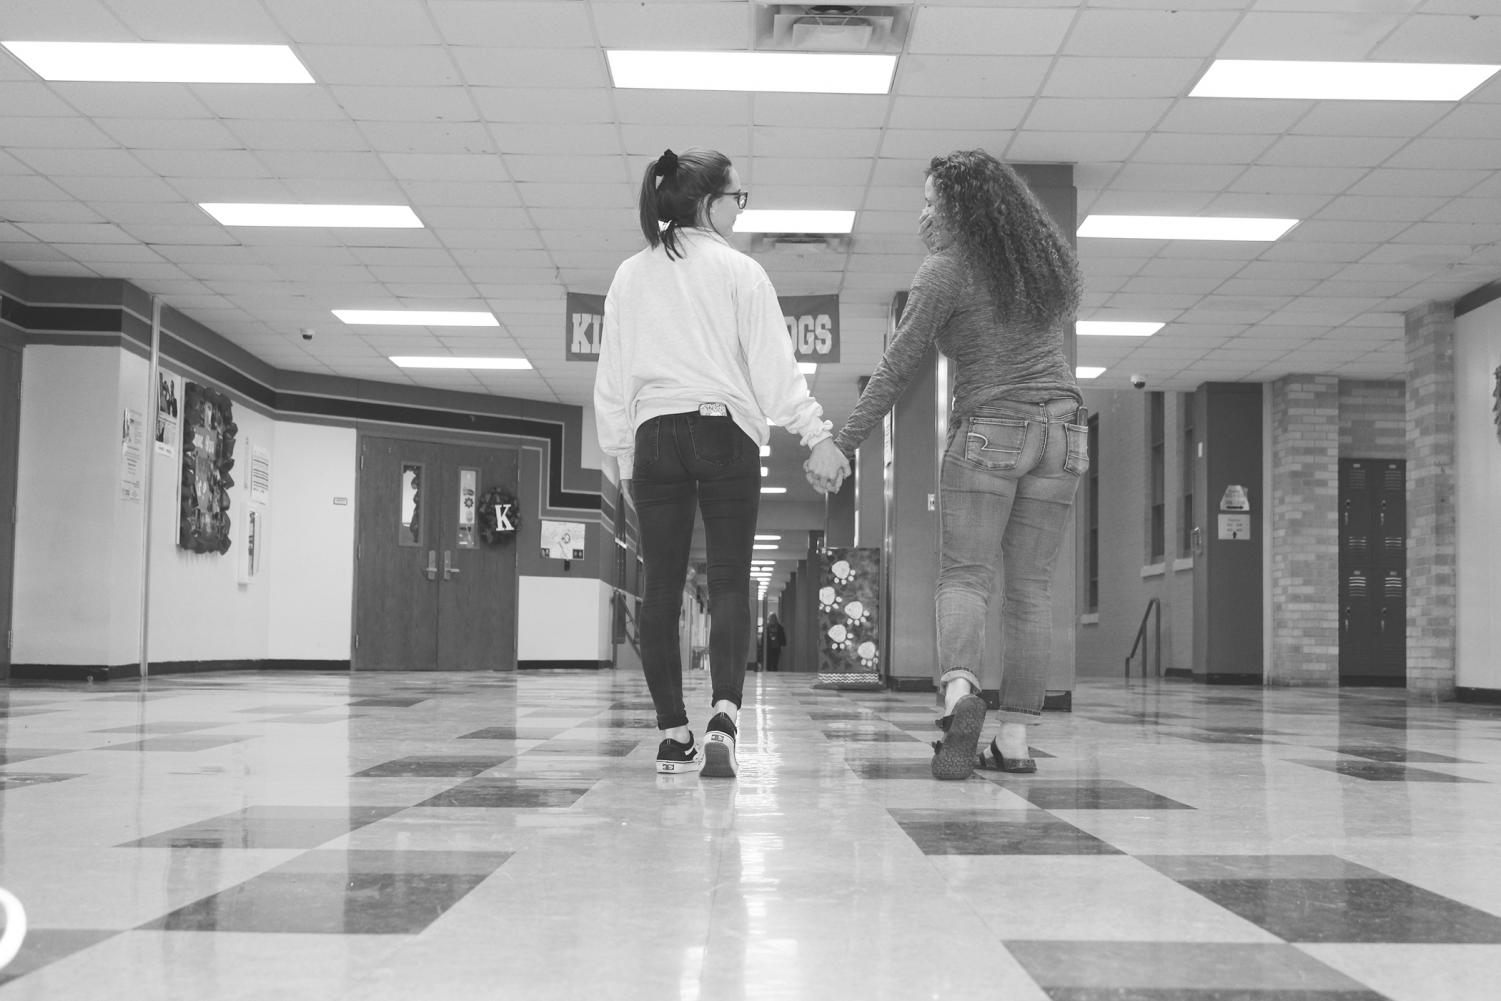 Sophomores Faith Jones and Olivia Arp demonstrate how to partake in a healthy, nontoxic friendship. Illustration photography.